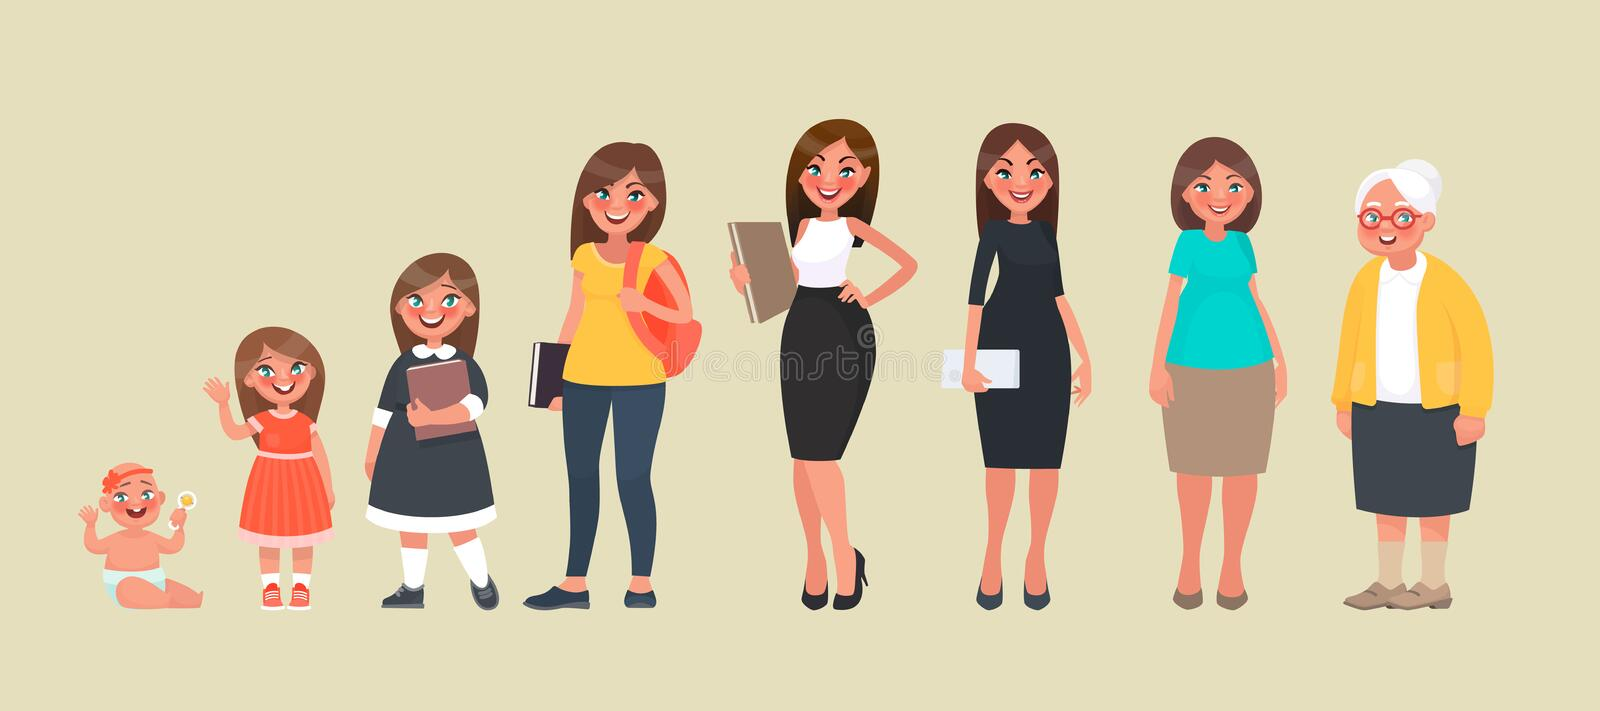 Character of a woman in different ages. A baby, a child, a teenager, an adult, an elderly person stock illustration